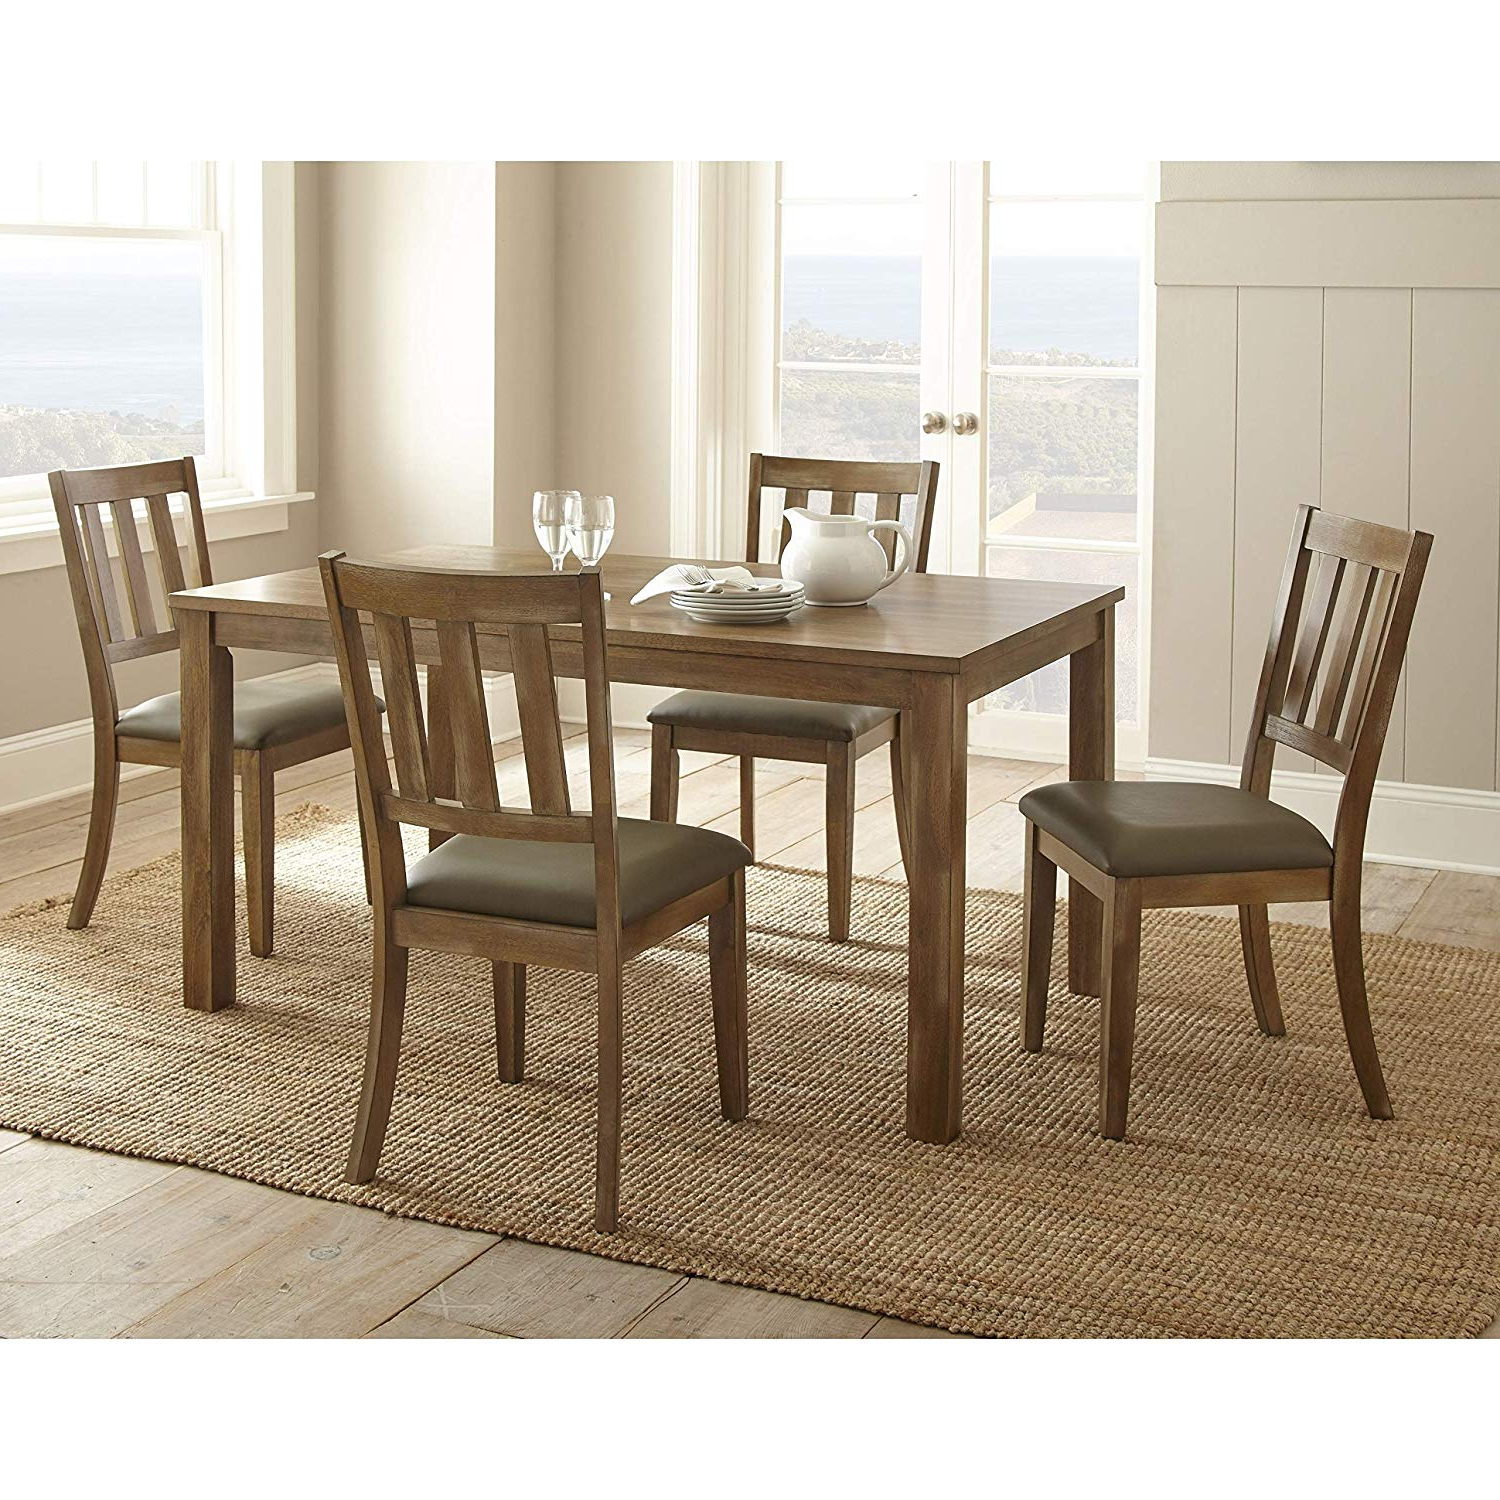 Most Recent Amazon – Greyson Living Avondale Brown Wood And Faux Regarding Avondale Dining Tables (View 11 of 25)